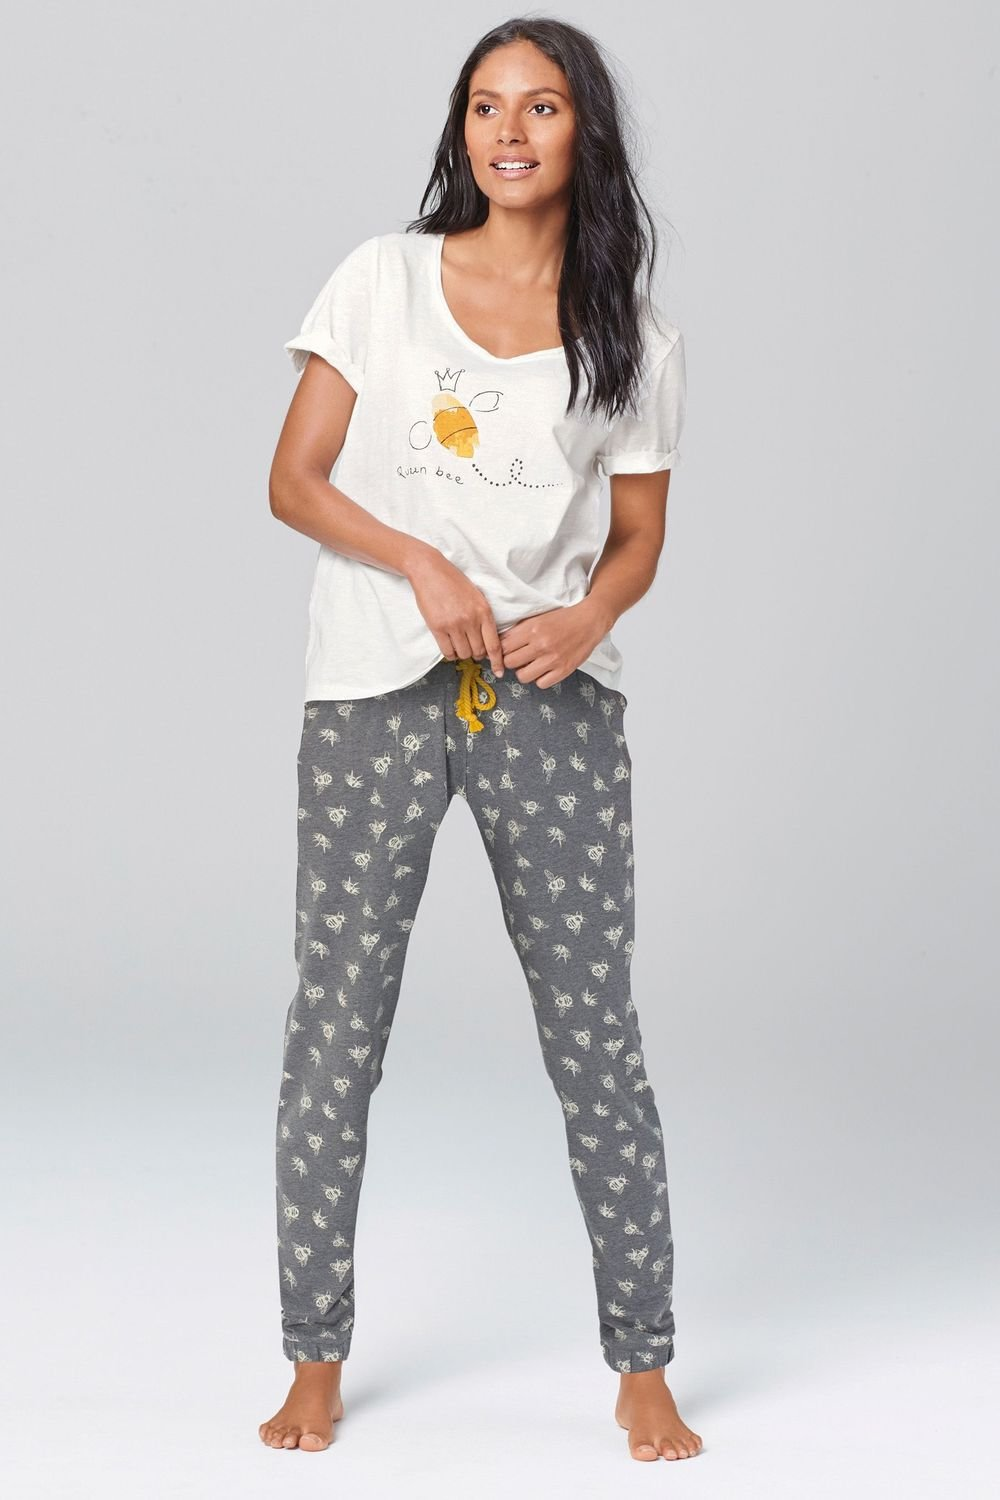 With pajamas and robes that fit and feel like a dream, you'll sleep better than you ever have before. Whether you're looking for pajama sets, bath robes or slippers, you're sure to find an incredible array of options for your sleepwear rotation.